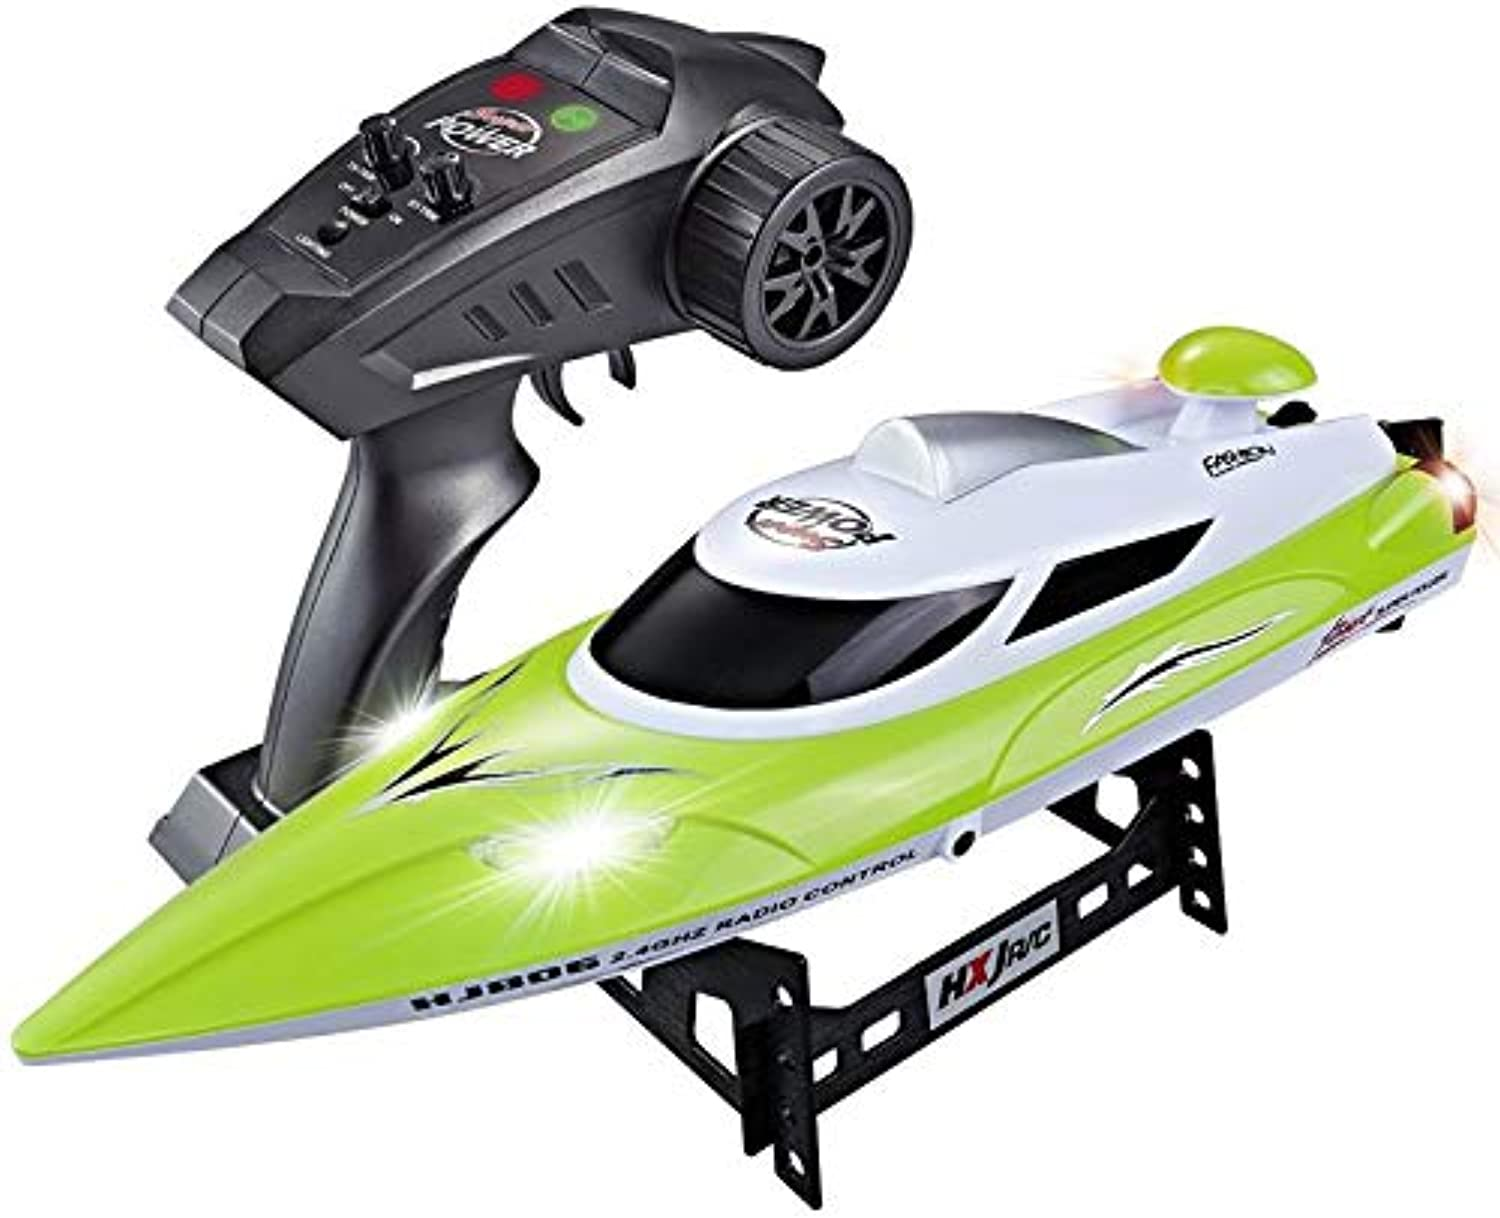 Generic YUKALA 2.4G High Speed Electric RC Racing Boat 35km h 200m Control Distance with Led Light  Water Cooling System Green